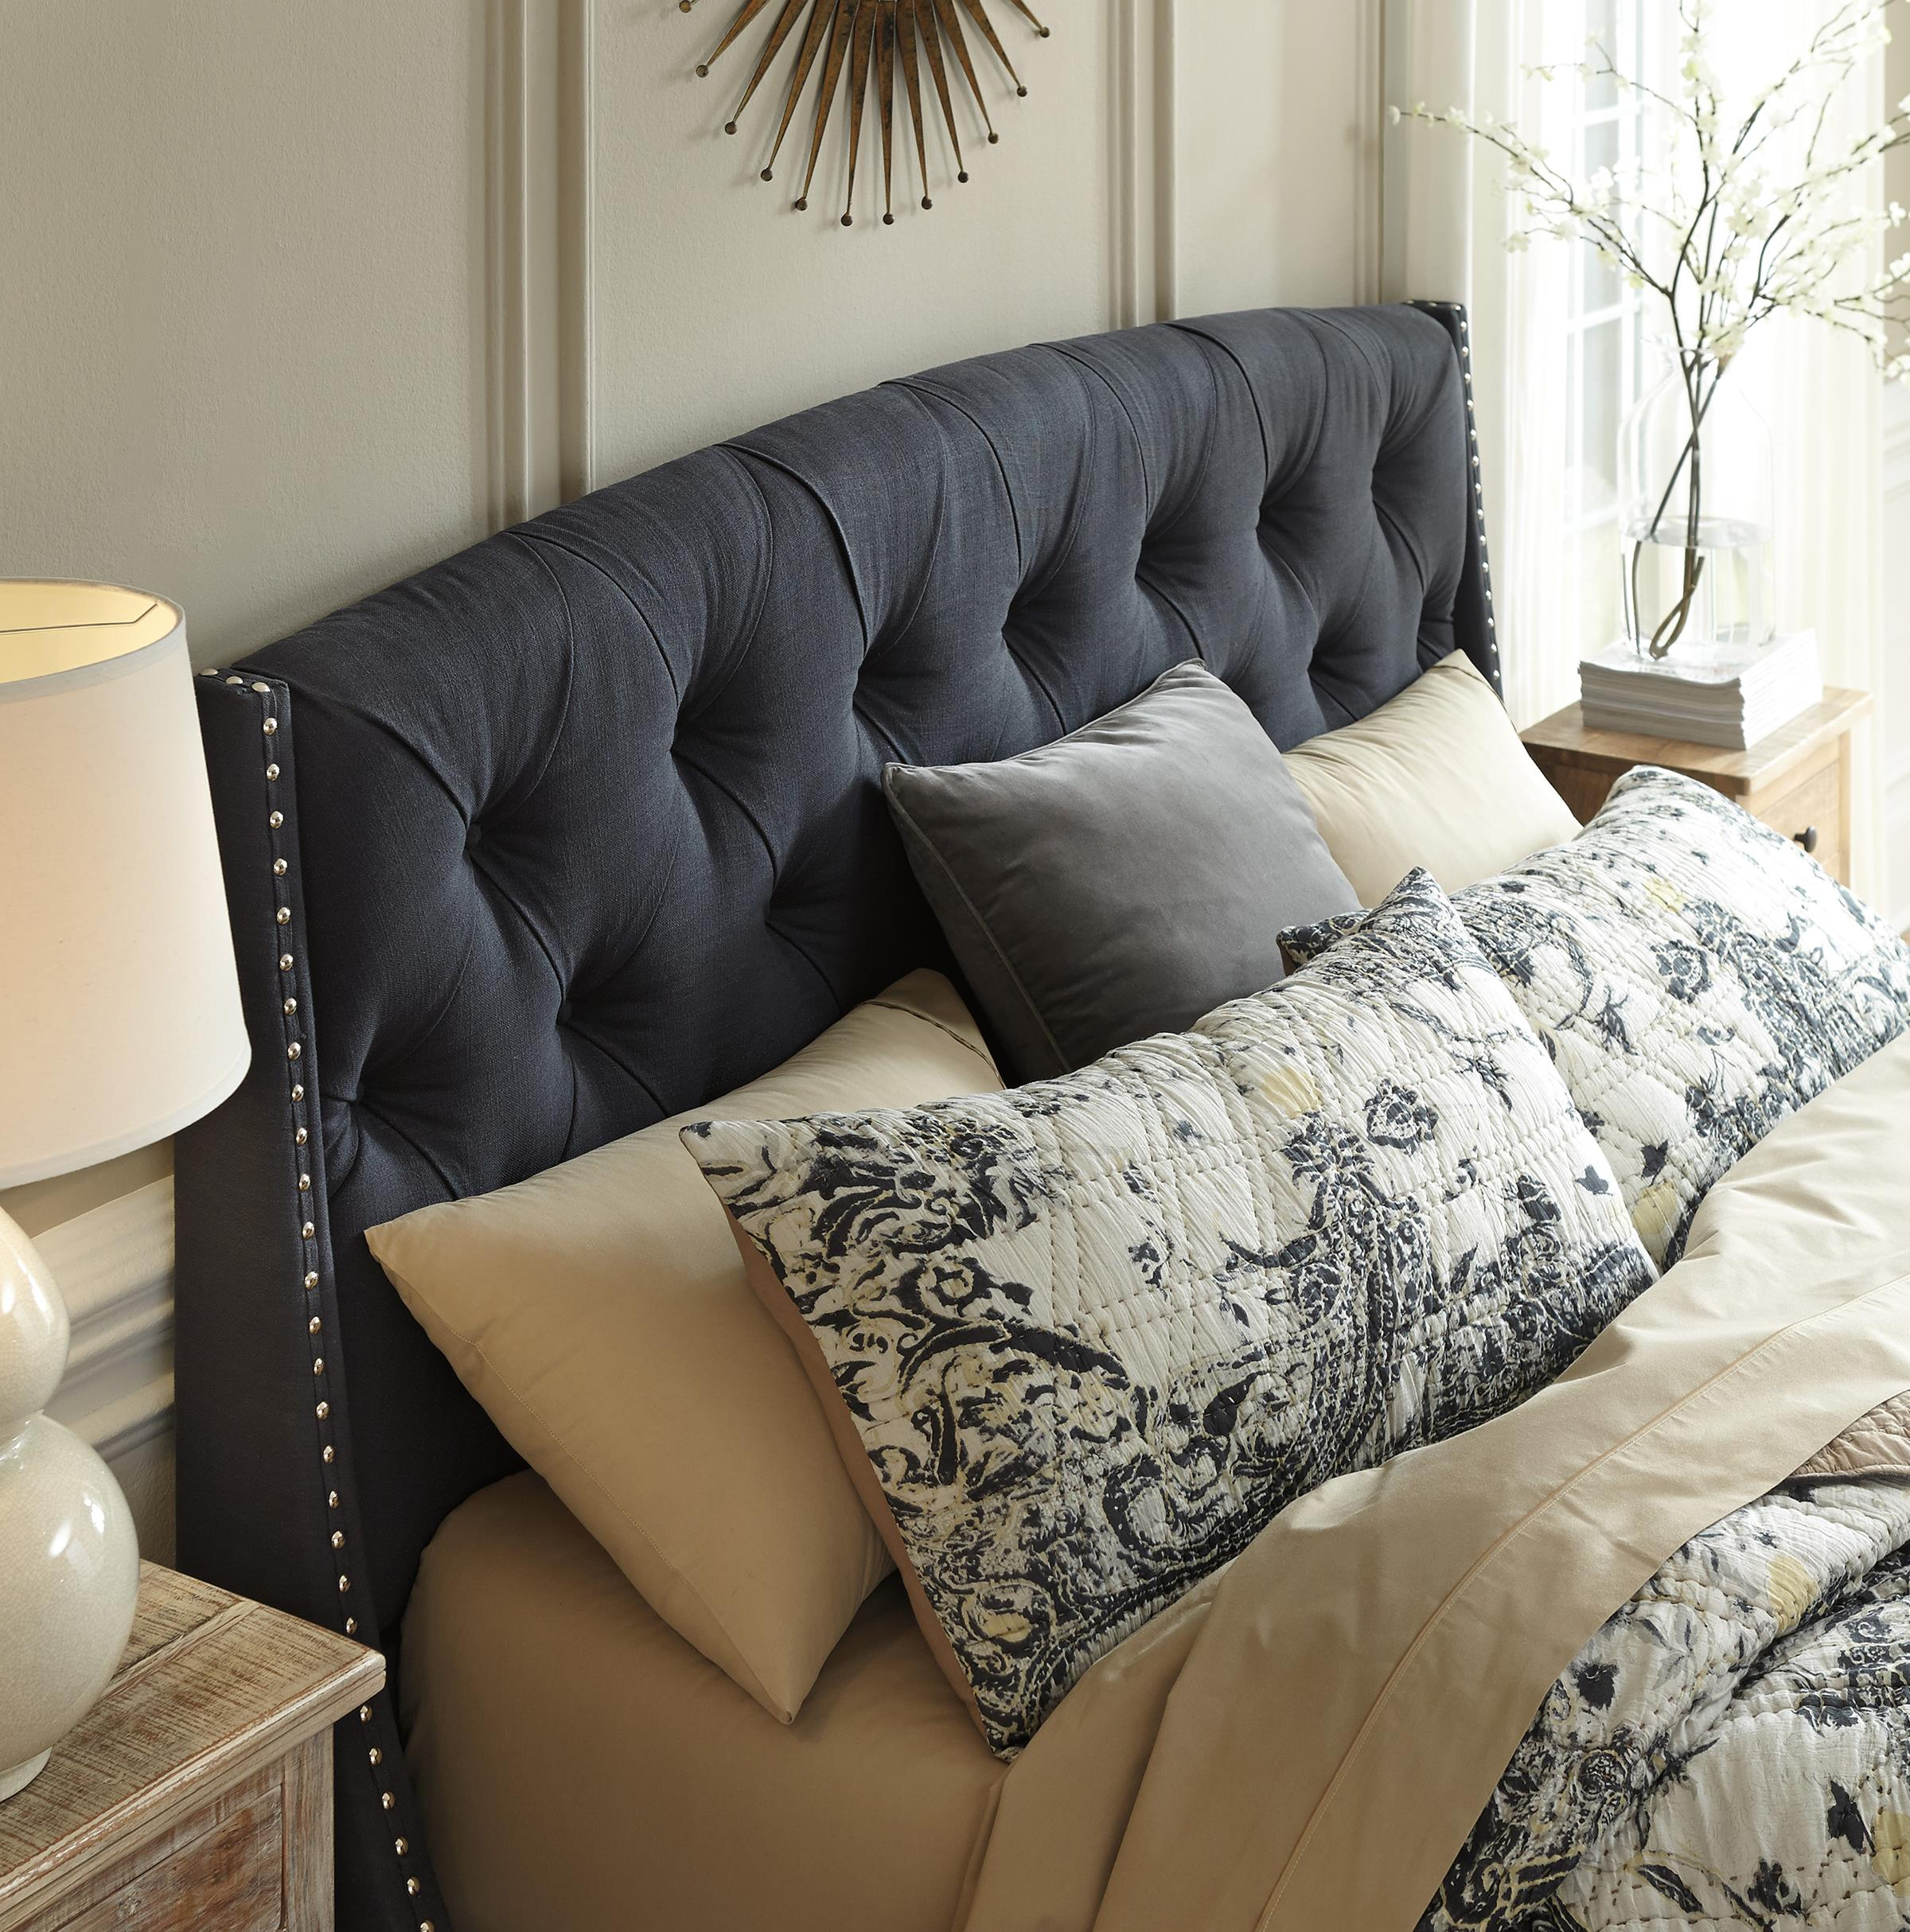 queen upholstered headboard. queen upholstered headboard in dark gray with tufting and nailhead